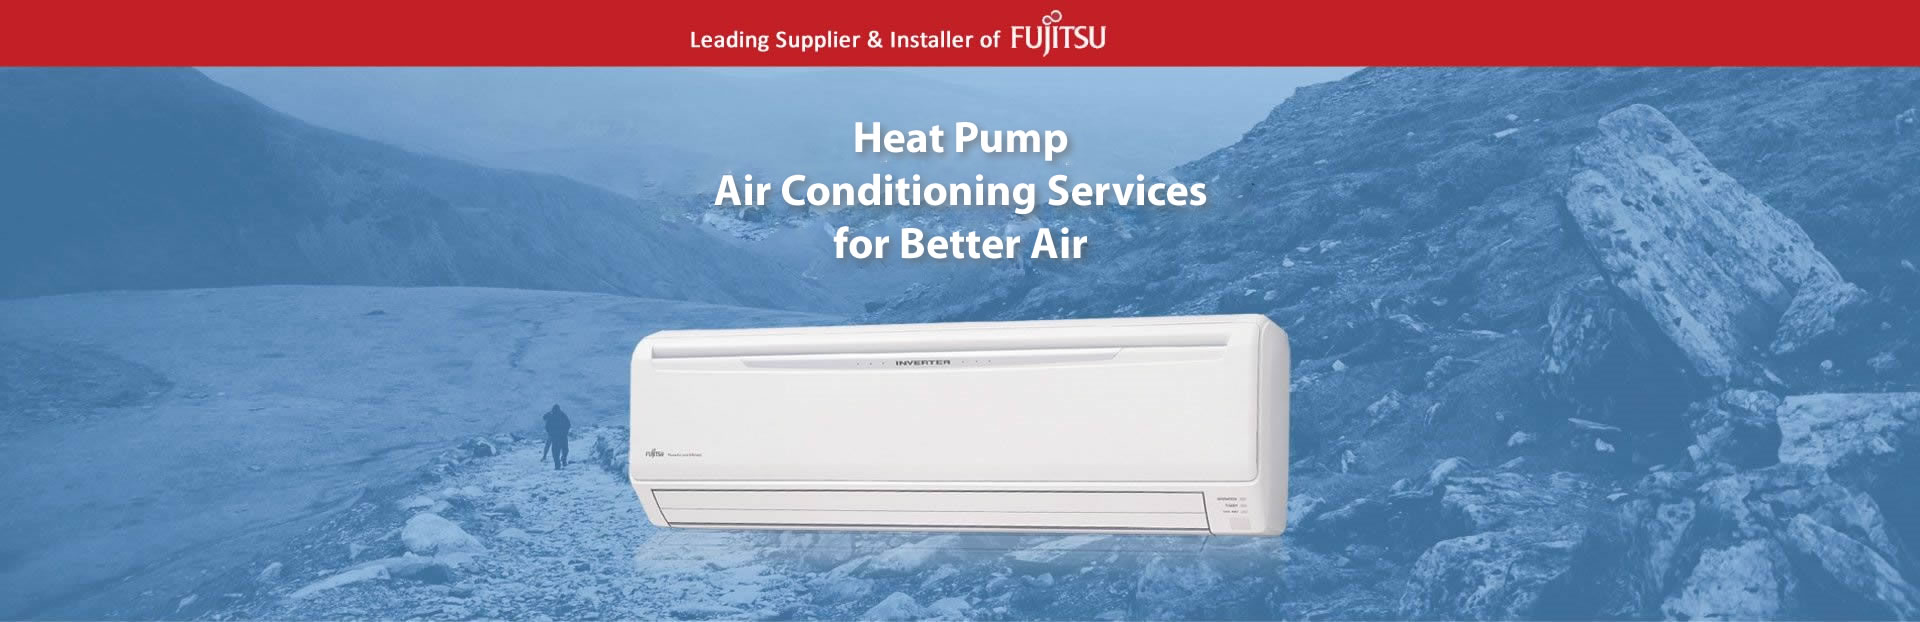 Heat Pump Air Conditioning Services For Better Air